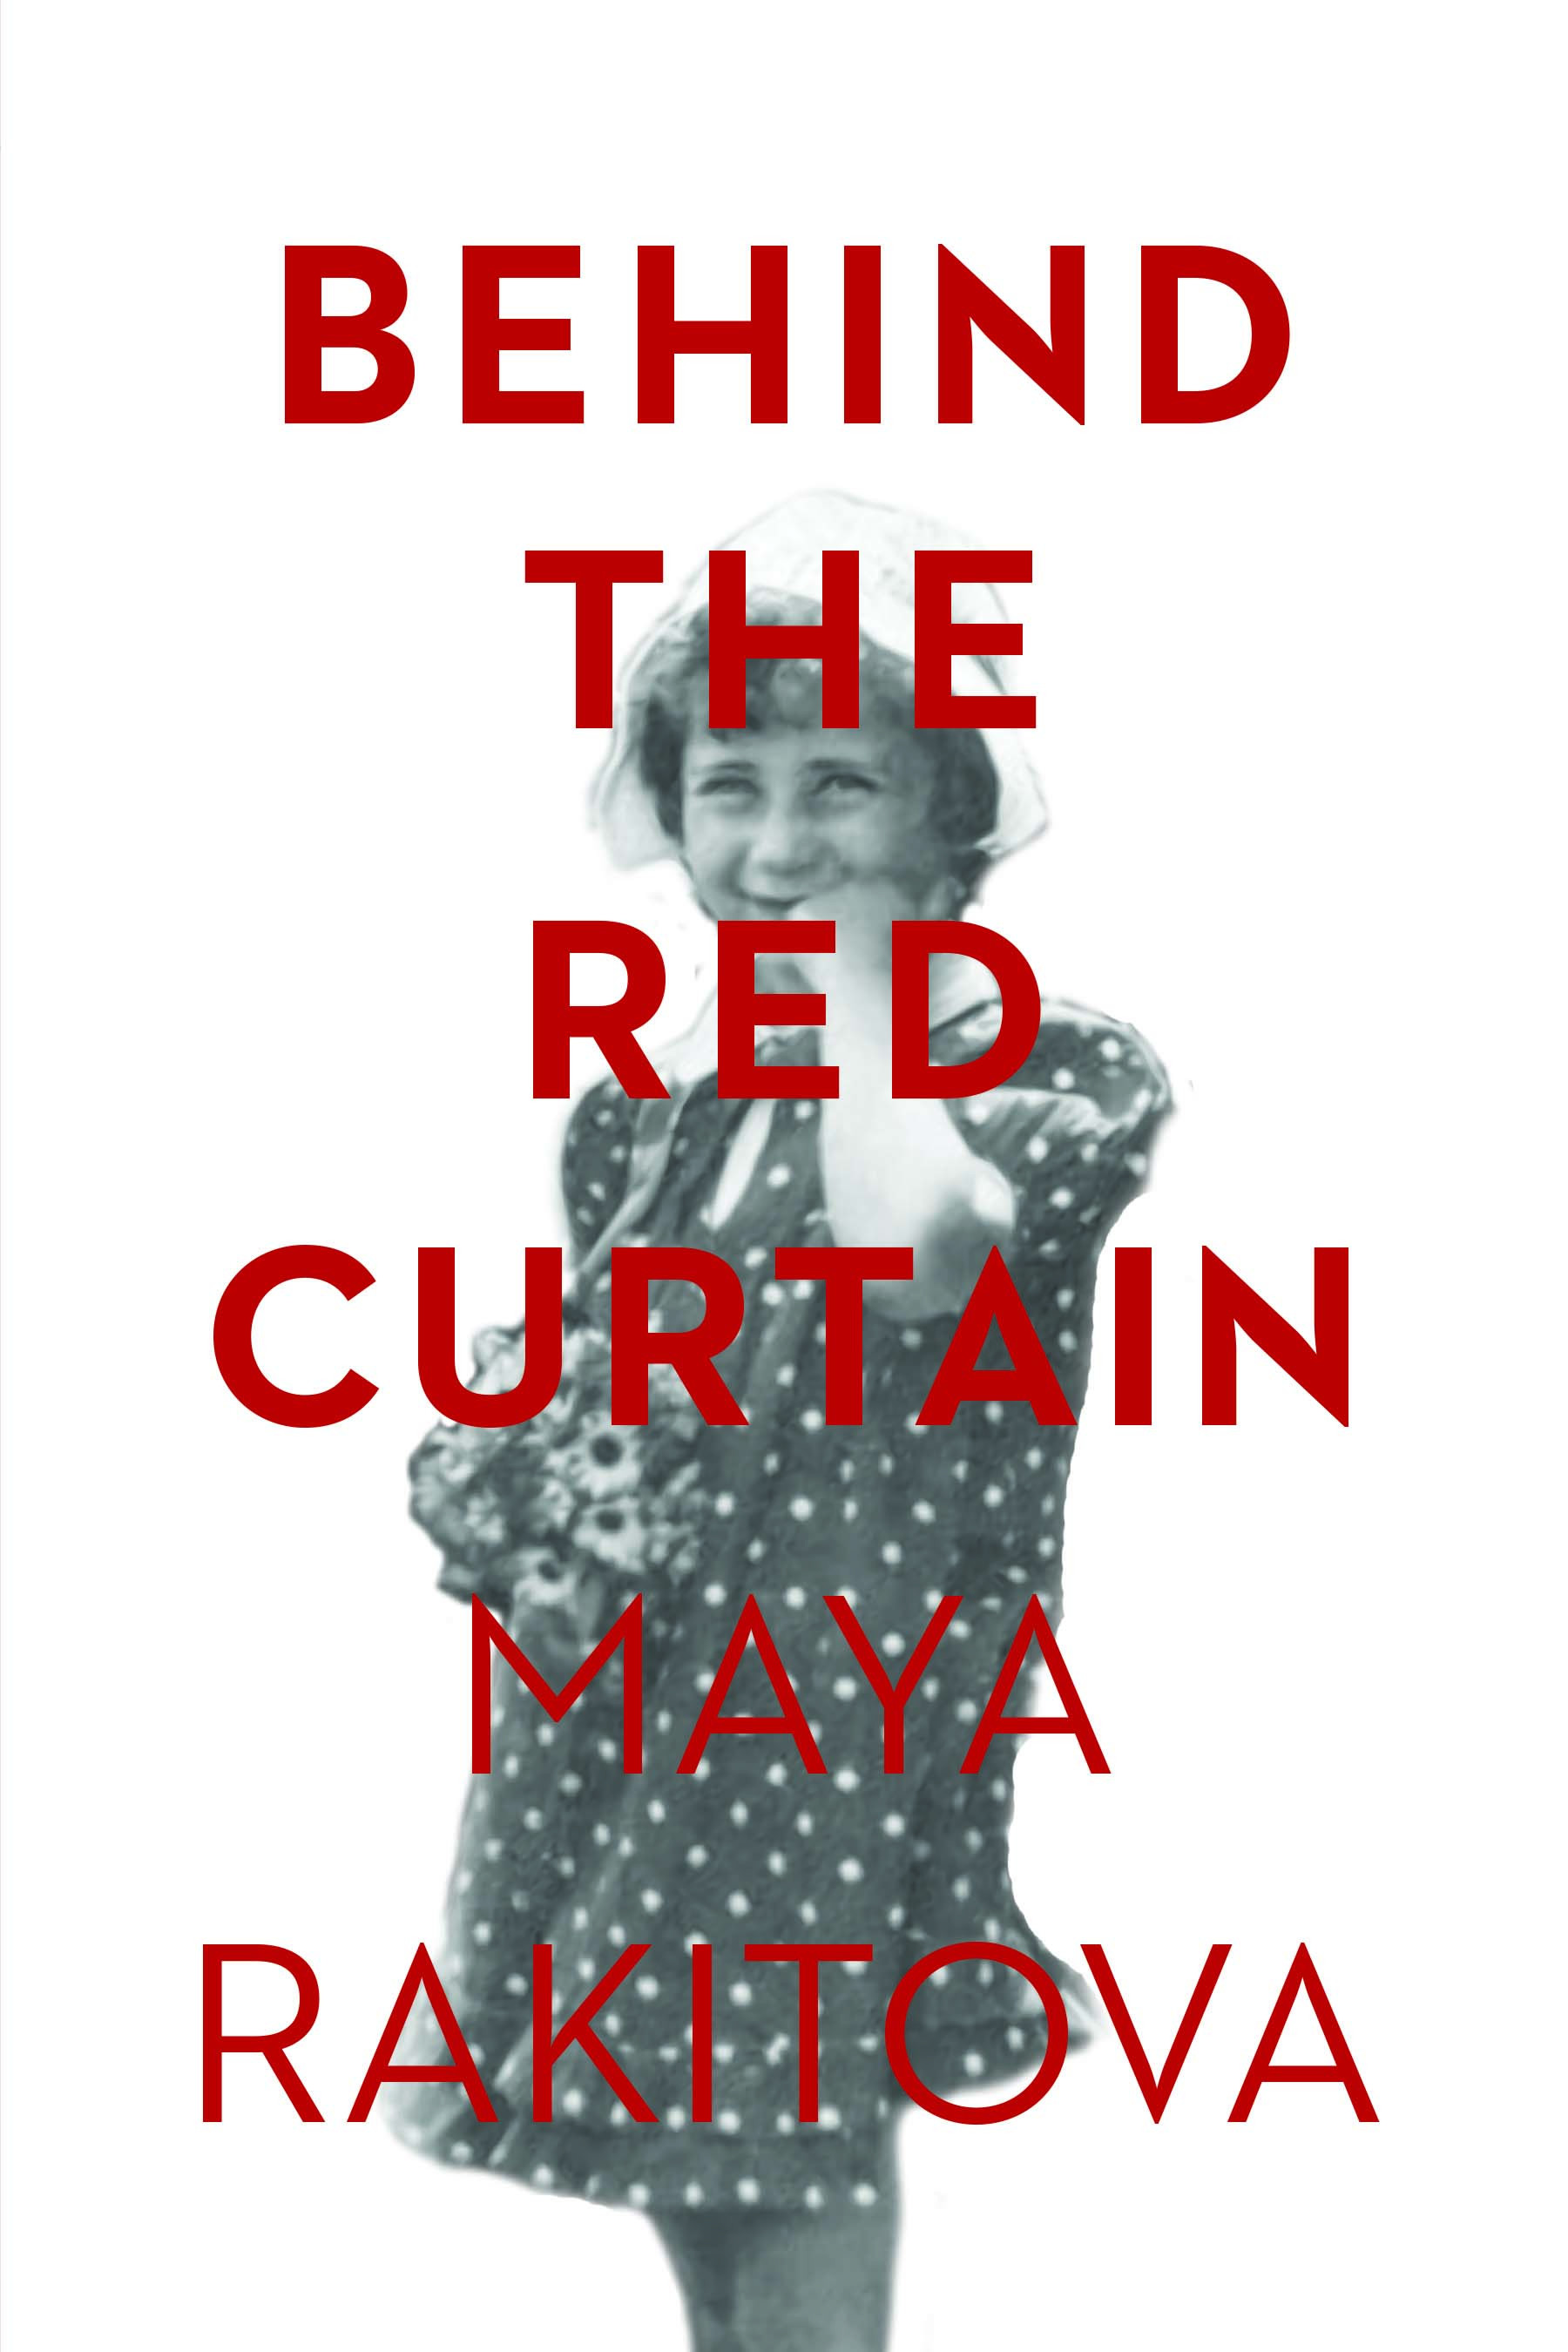 Behind the Red Curtain (Traduction française à venir) book cover